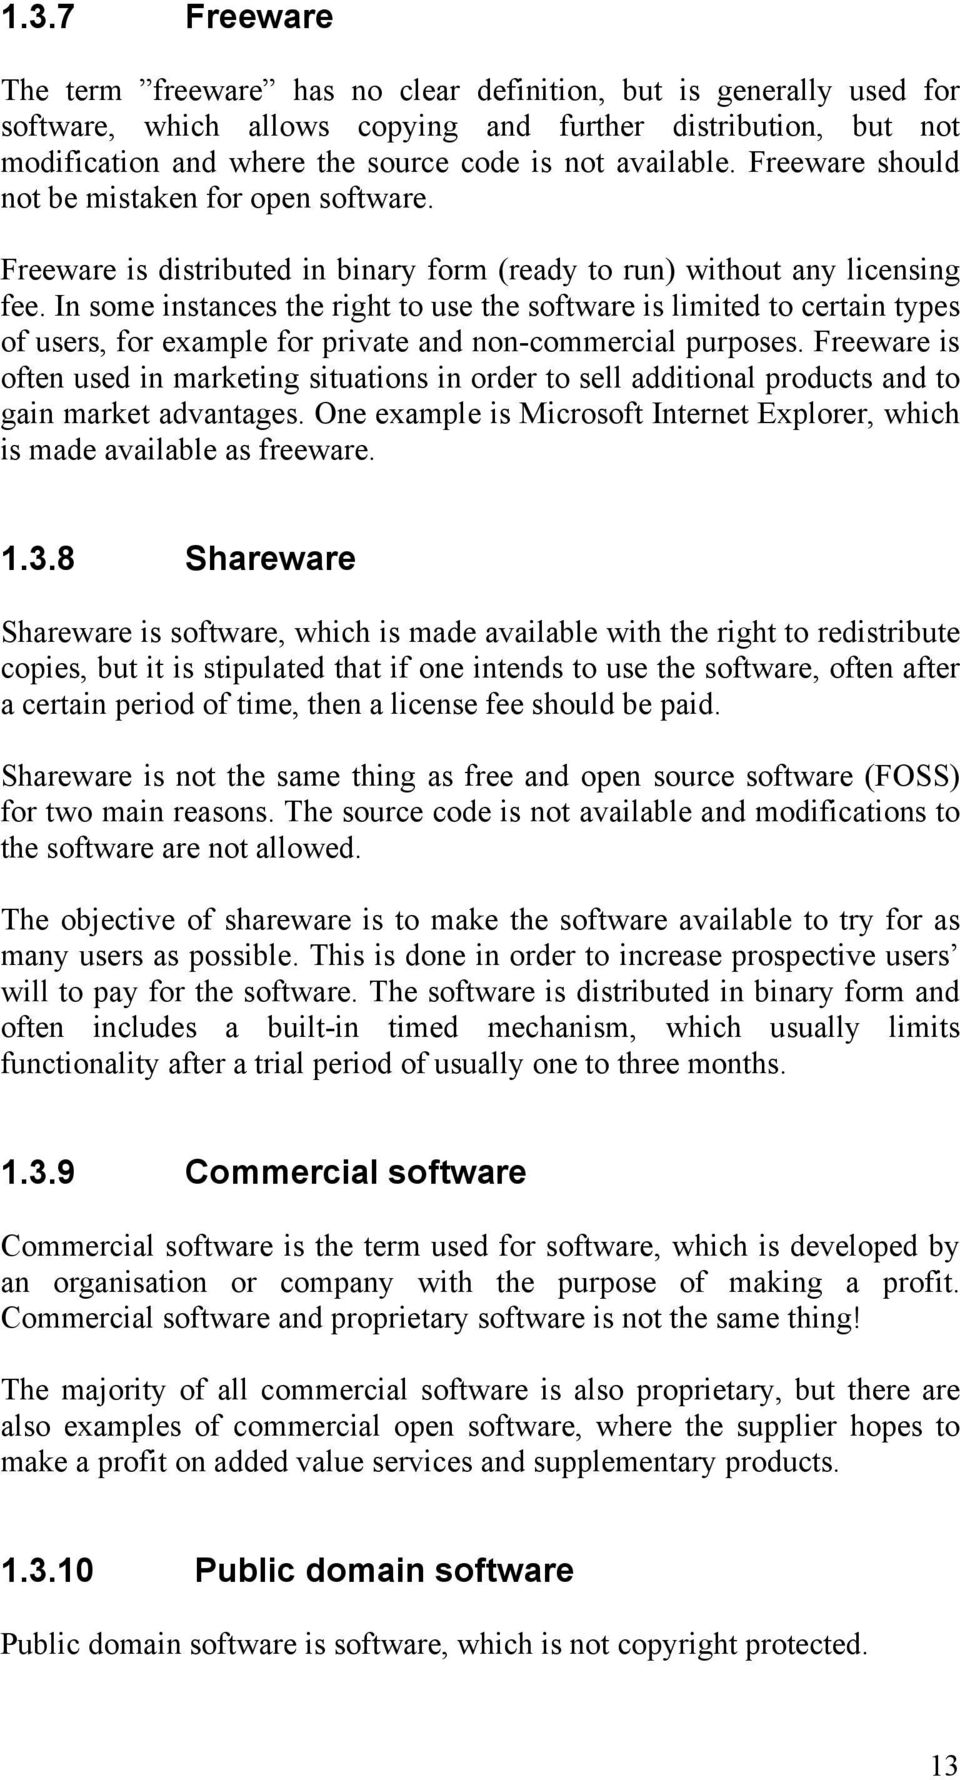 In some instances the right to use the software is limited to certain types of users, for example for private and non-commercial purposes.